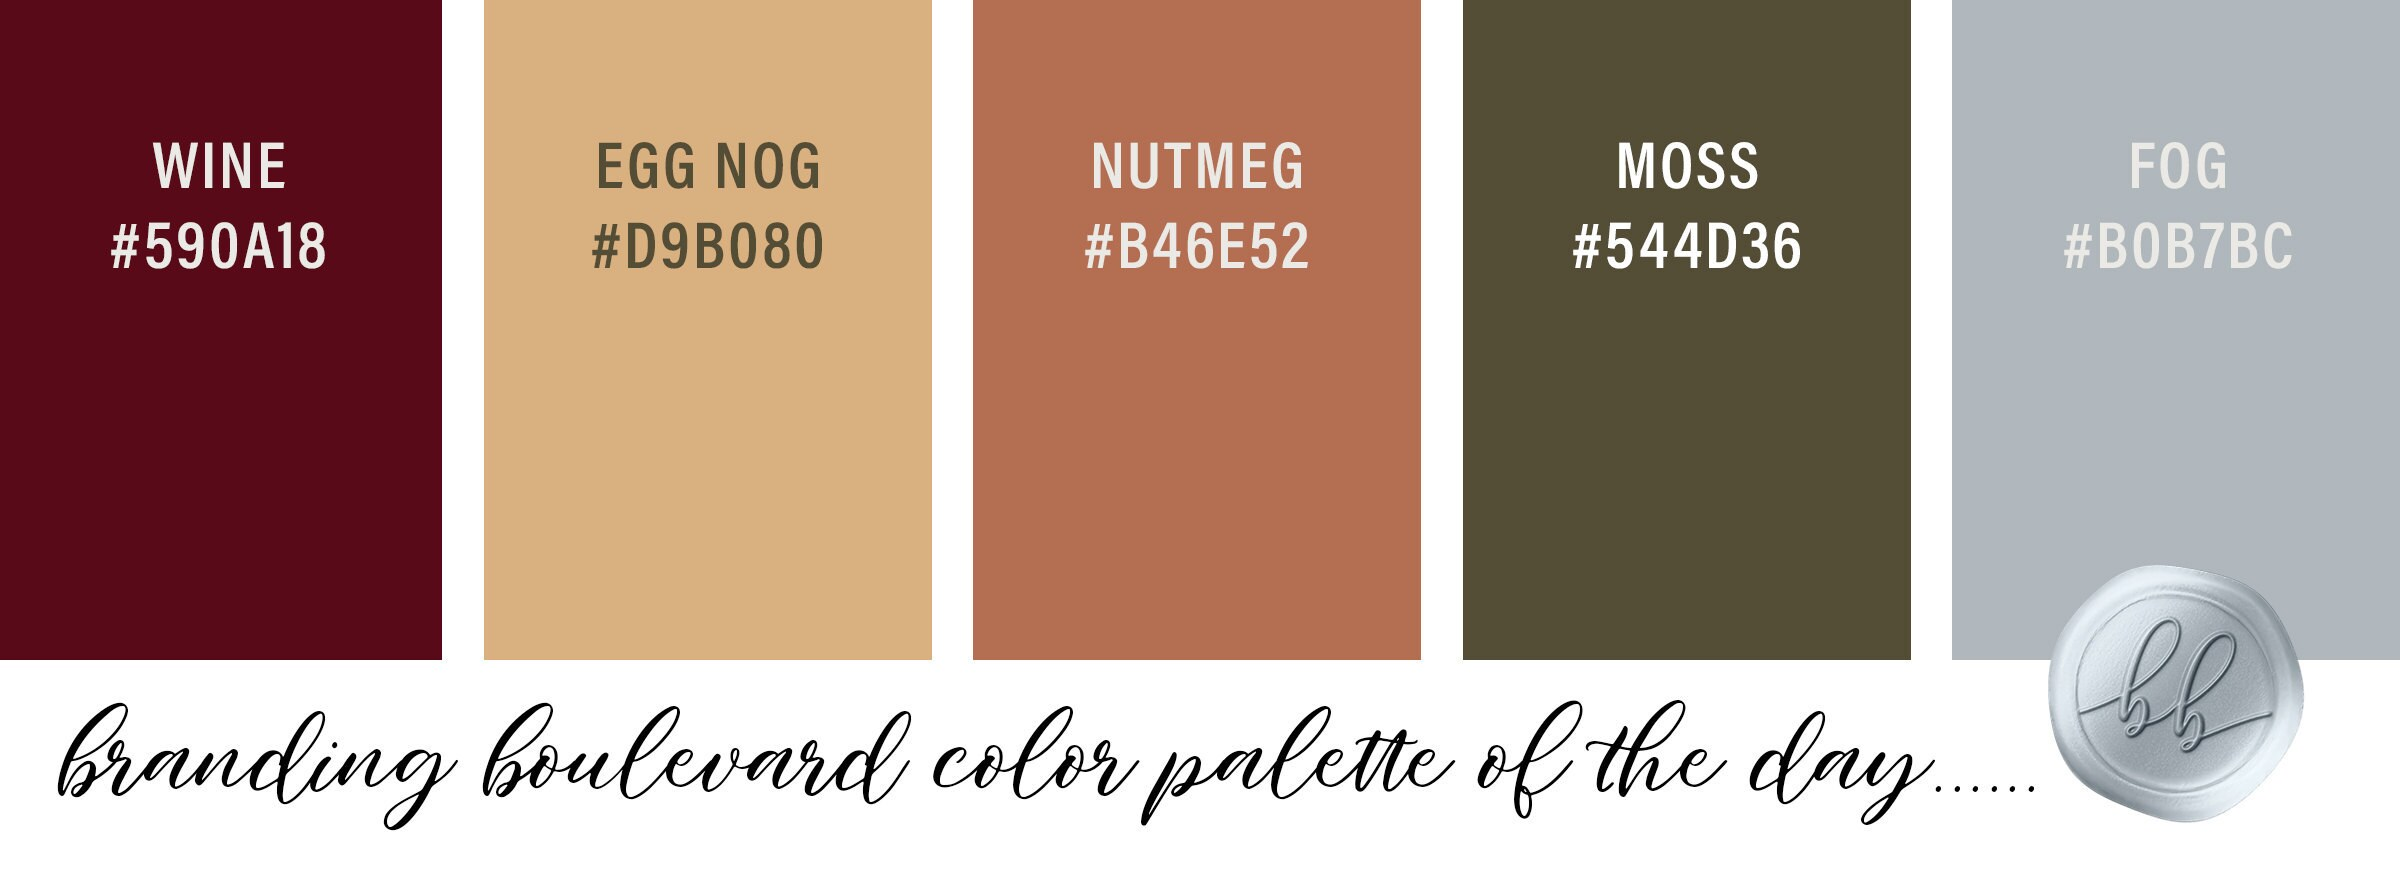 Color Palette of the Day - Harvest Breeze - Wine Dark Red, Eggnog Yellow, Nutmeg Orange, Moss Green, and Fog Gray